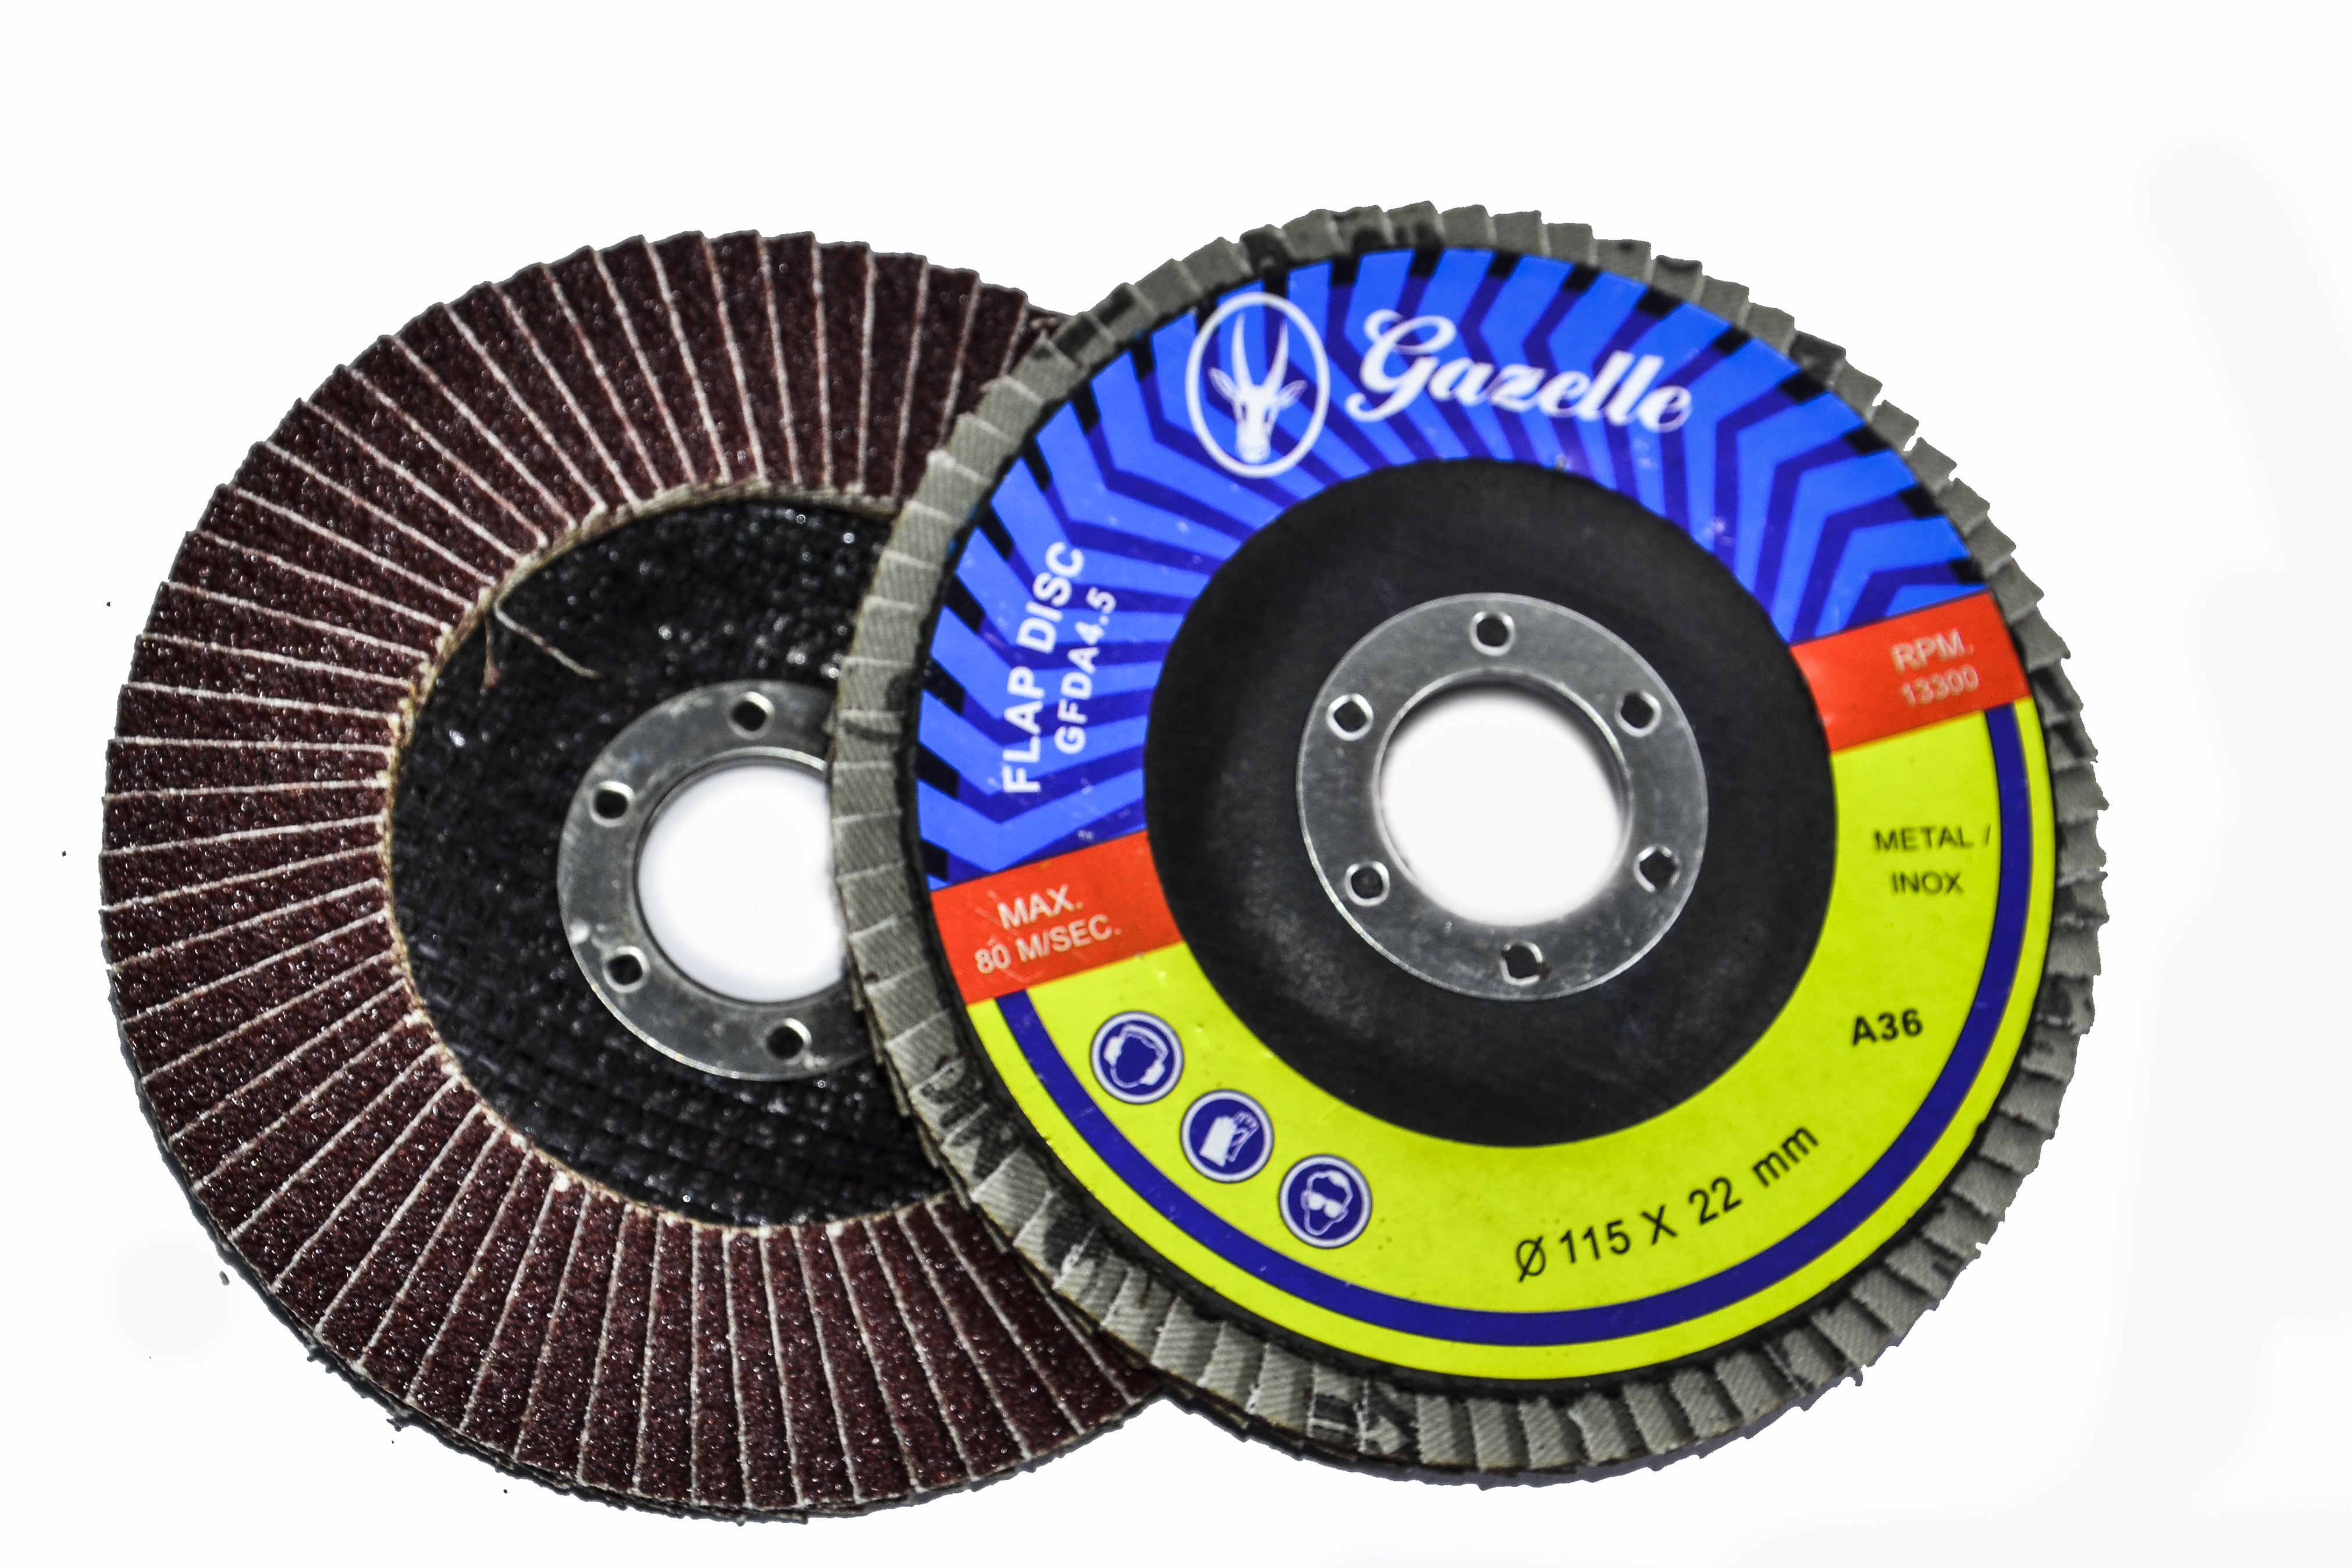 GAZELLE GFDA4536G - Flap Disc 4.5in – 115mm x 36Grit Aluminium Oxide